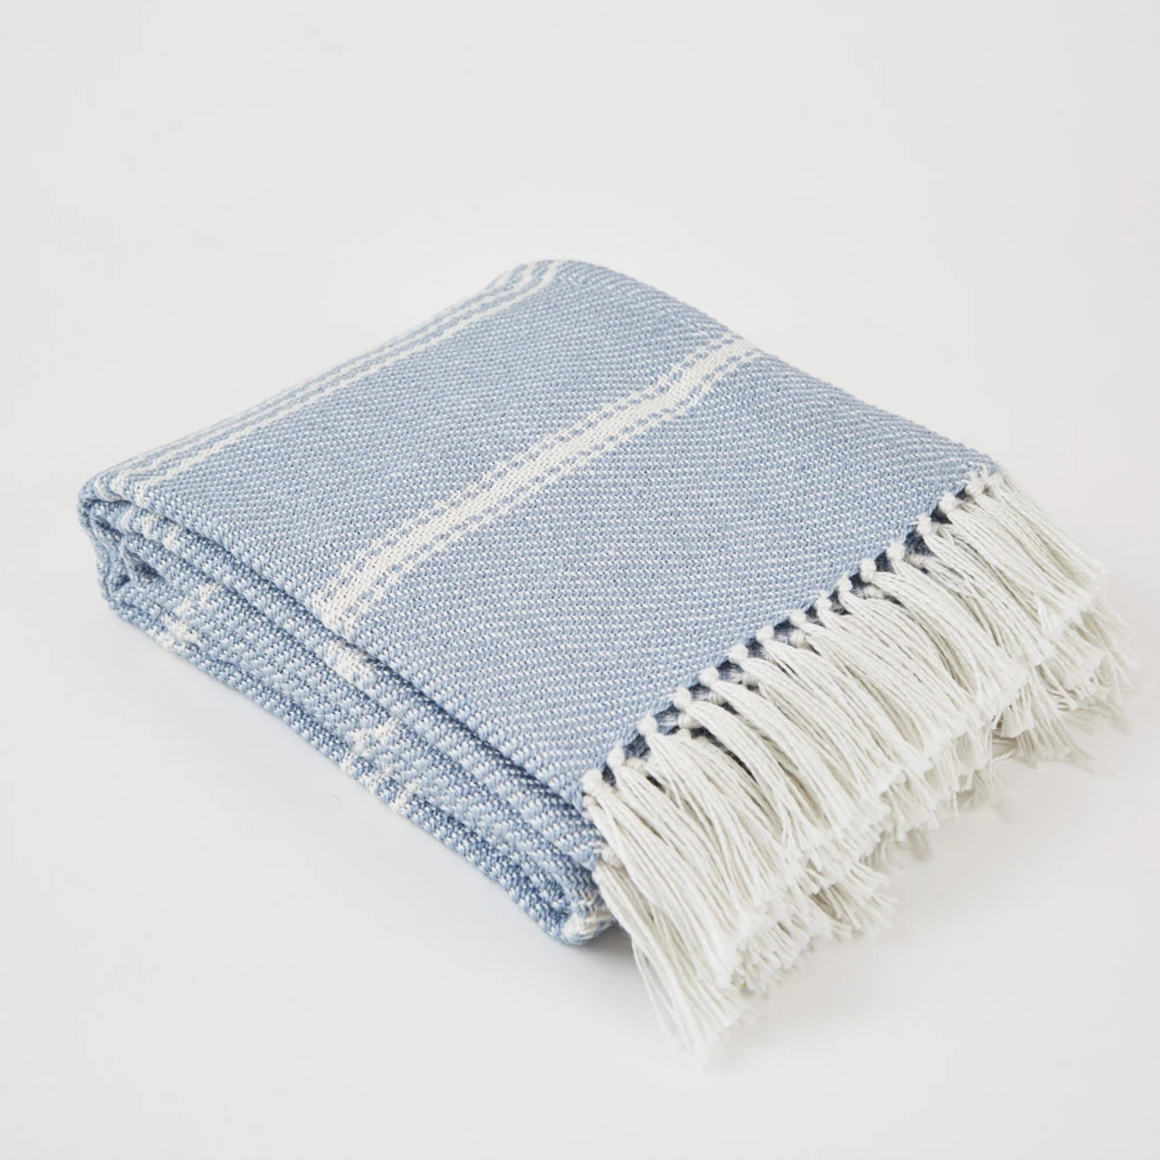 OXFORD STRIPE LAVENDER BLANKET